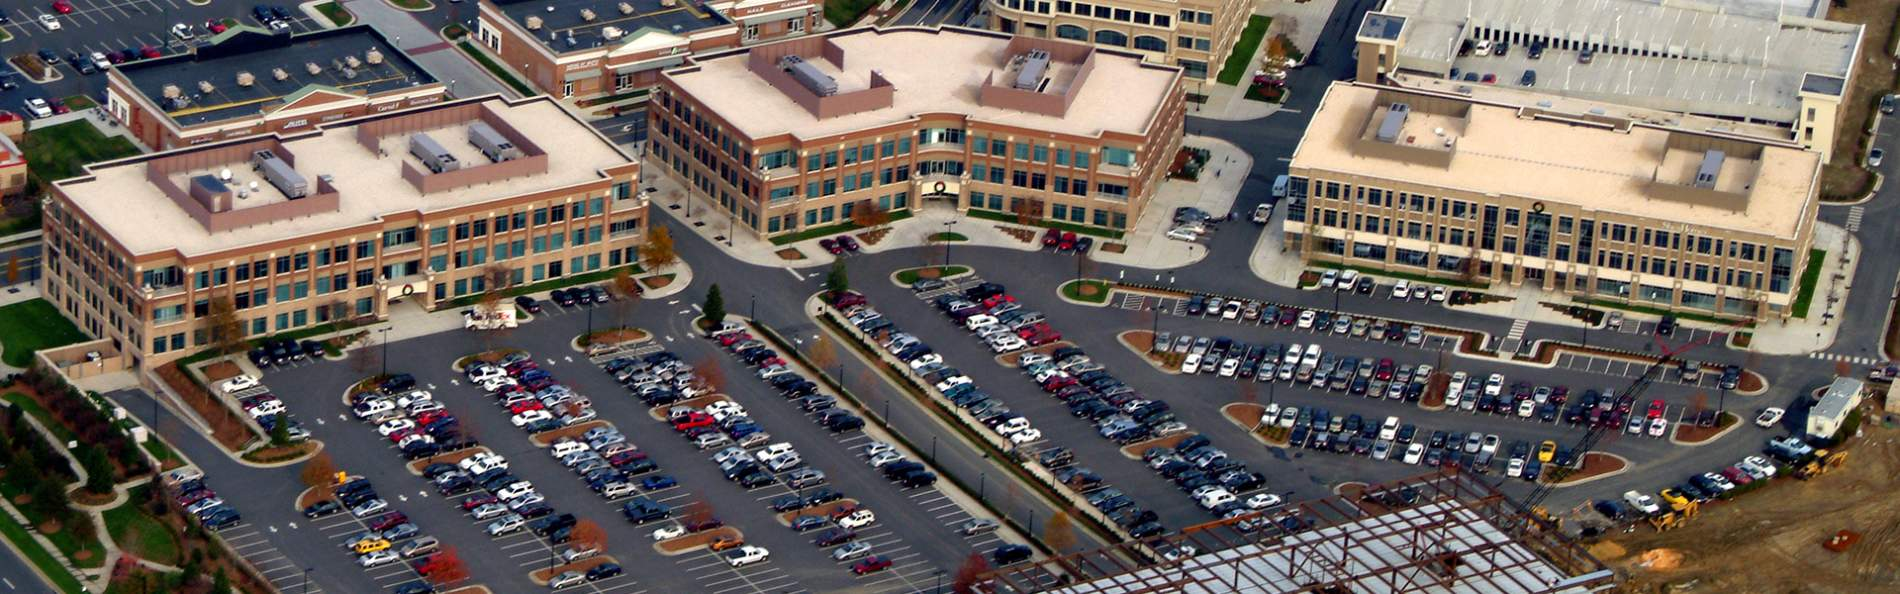 600 parking spaces to meet parking requirements for the buildings